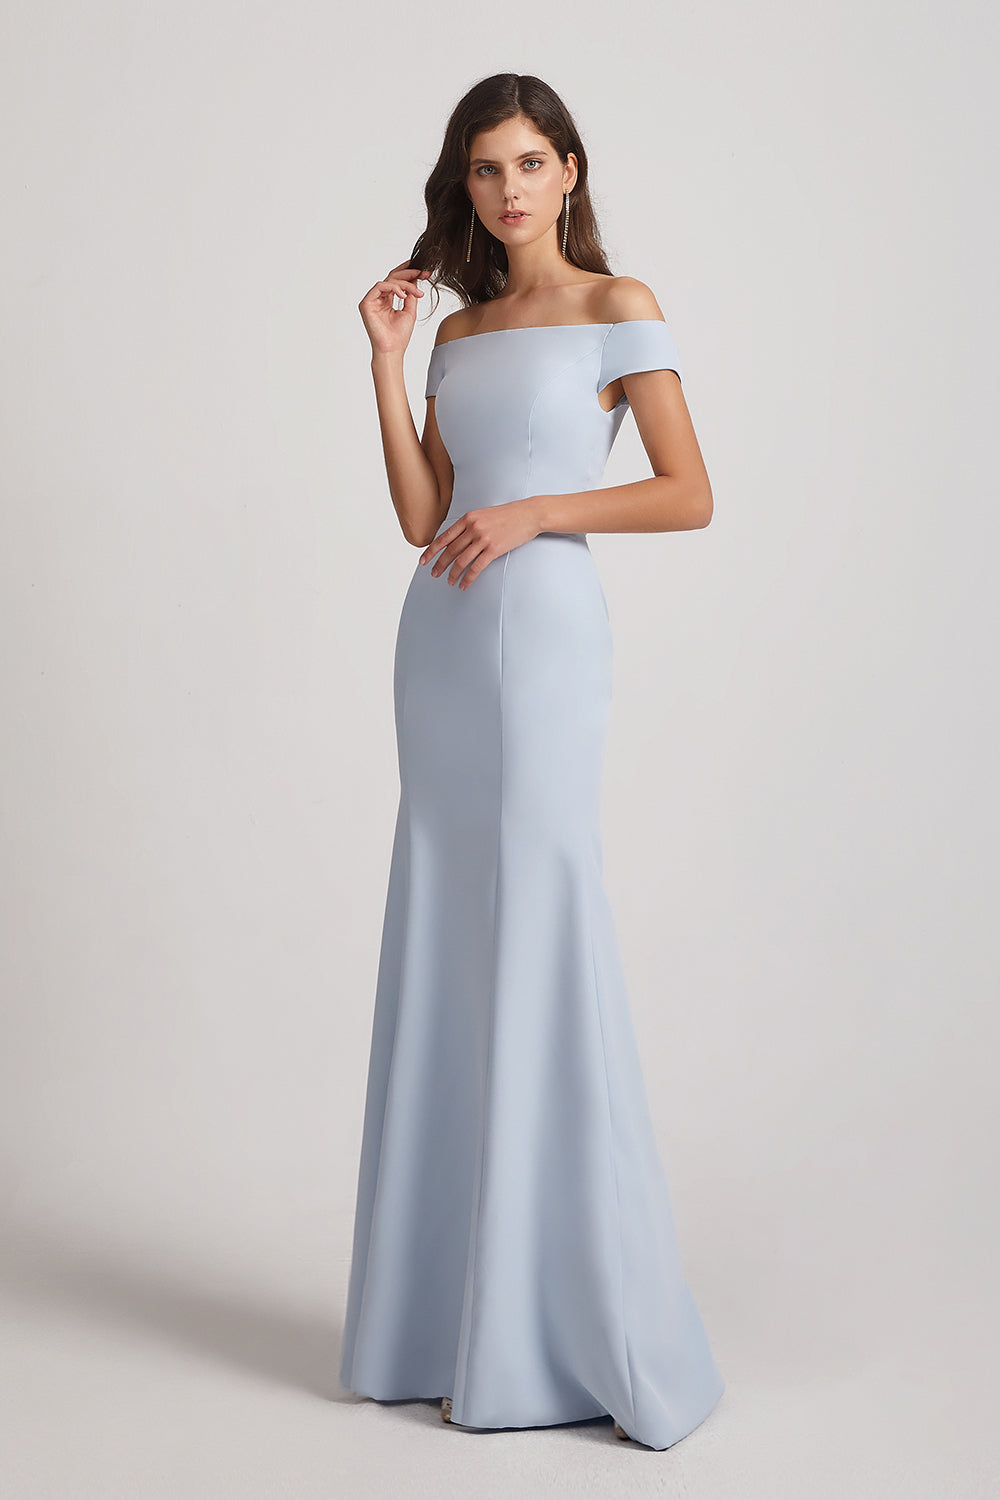 floor length off-the-shoulder formal dress